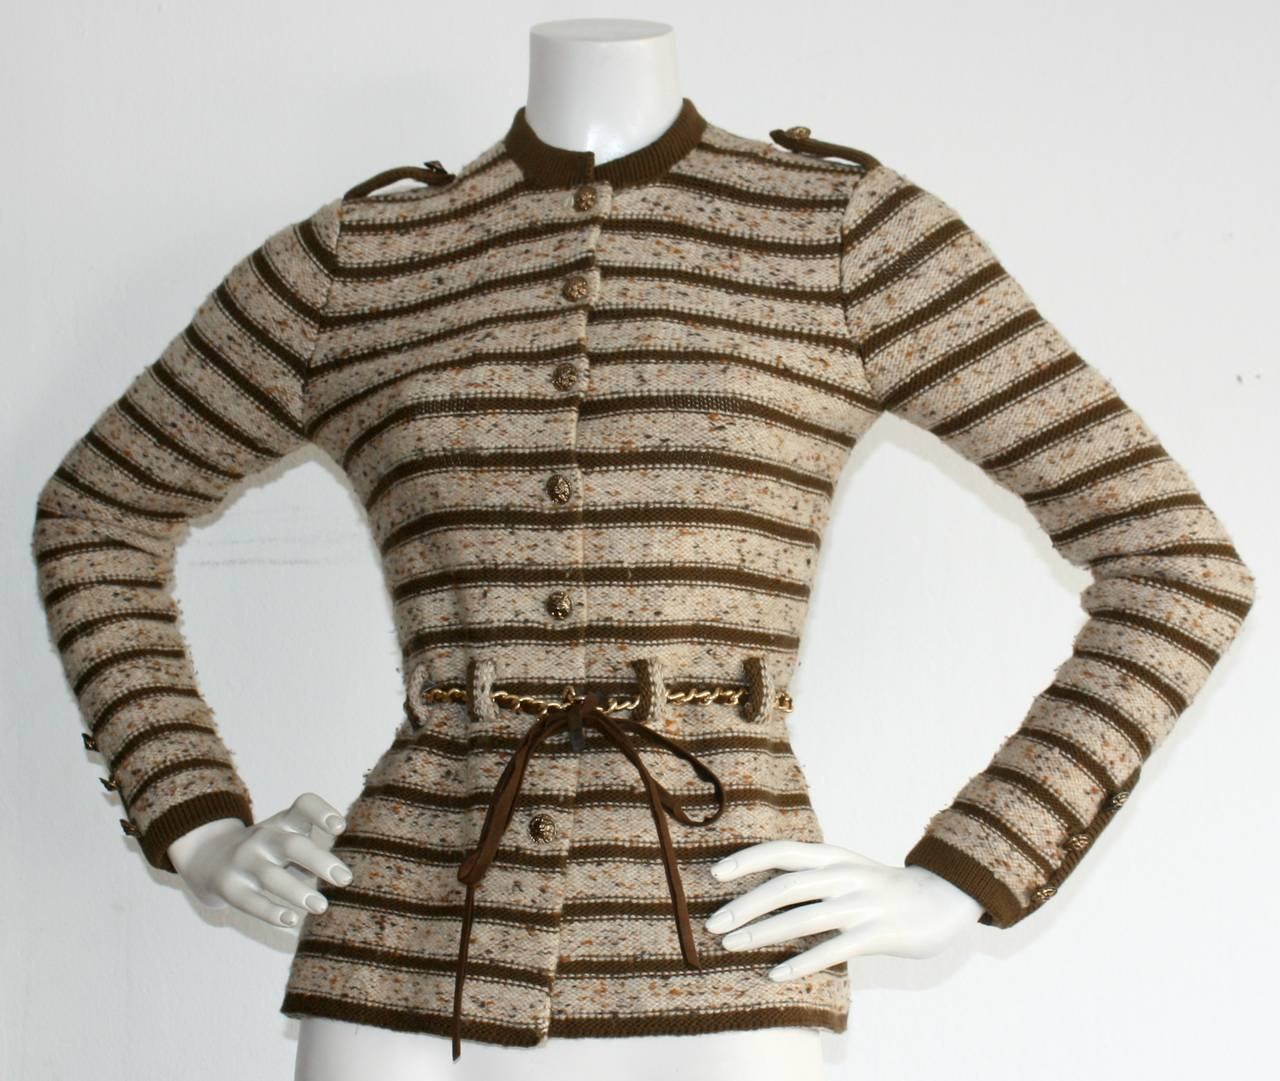 Absolute Chic vintage Adolfo for Saks 5th Ave. cardigan, with matching gold chain belt, interlaced with brown suede. Intricate brass buttons up the front, and at shoulders. Can easily be dressed up, or down. In great condition. Approximately Size